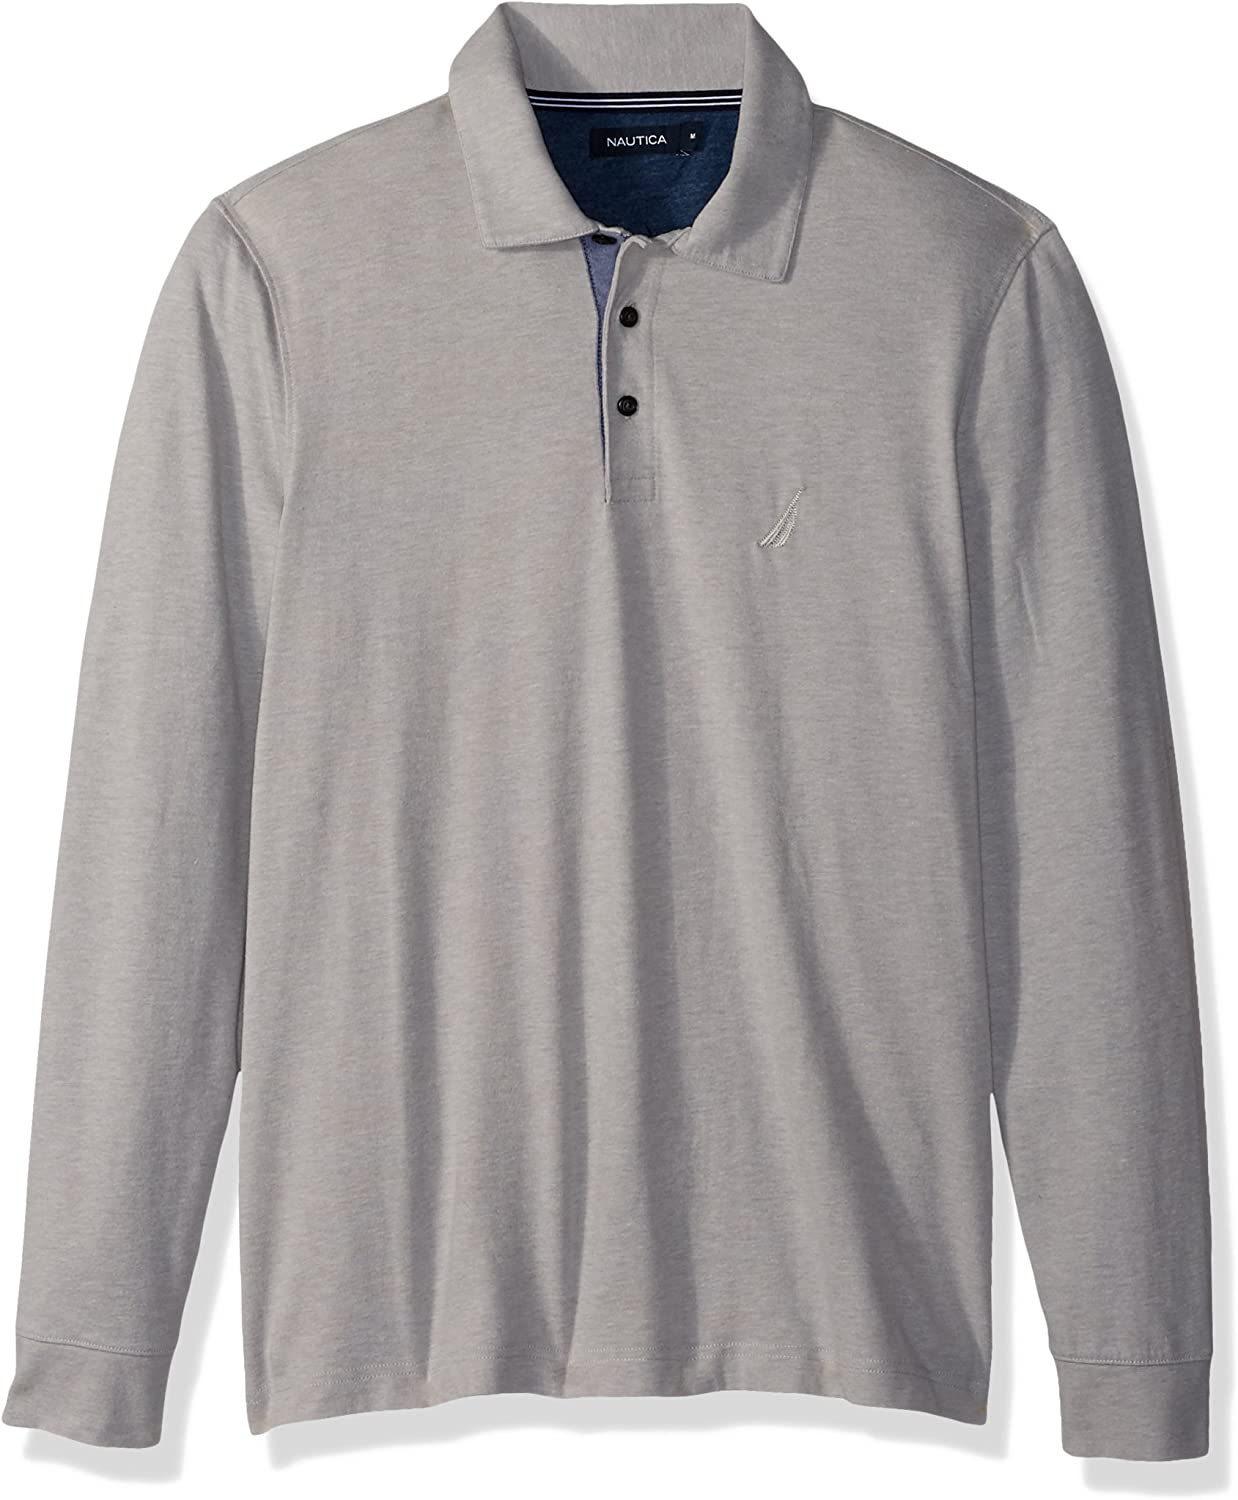 Nautica - Polo de manga larga para hombre - Gris - Large: Amazon ...